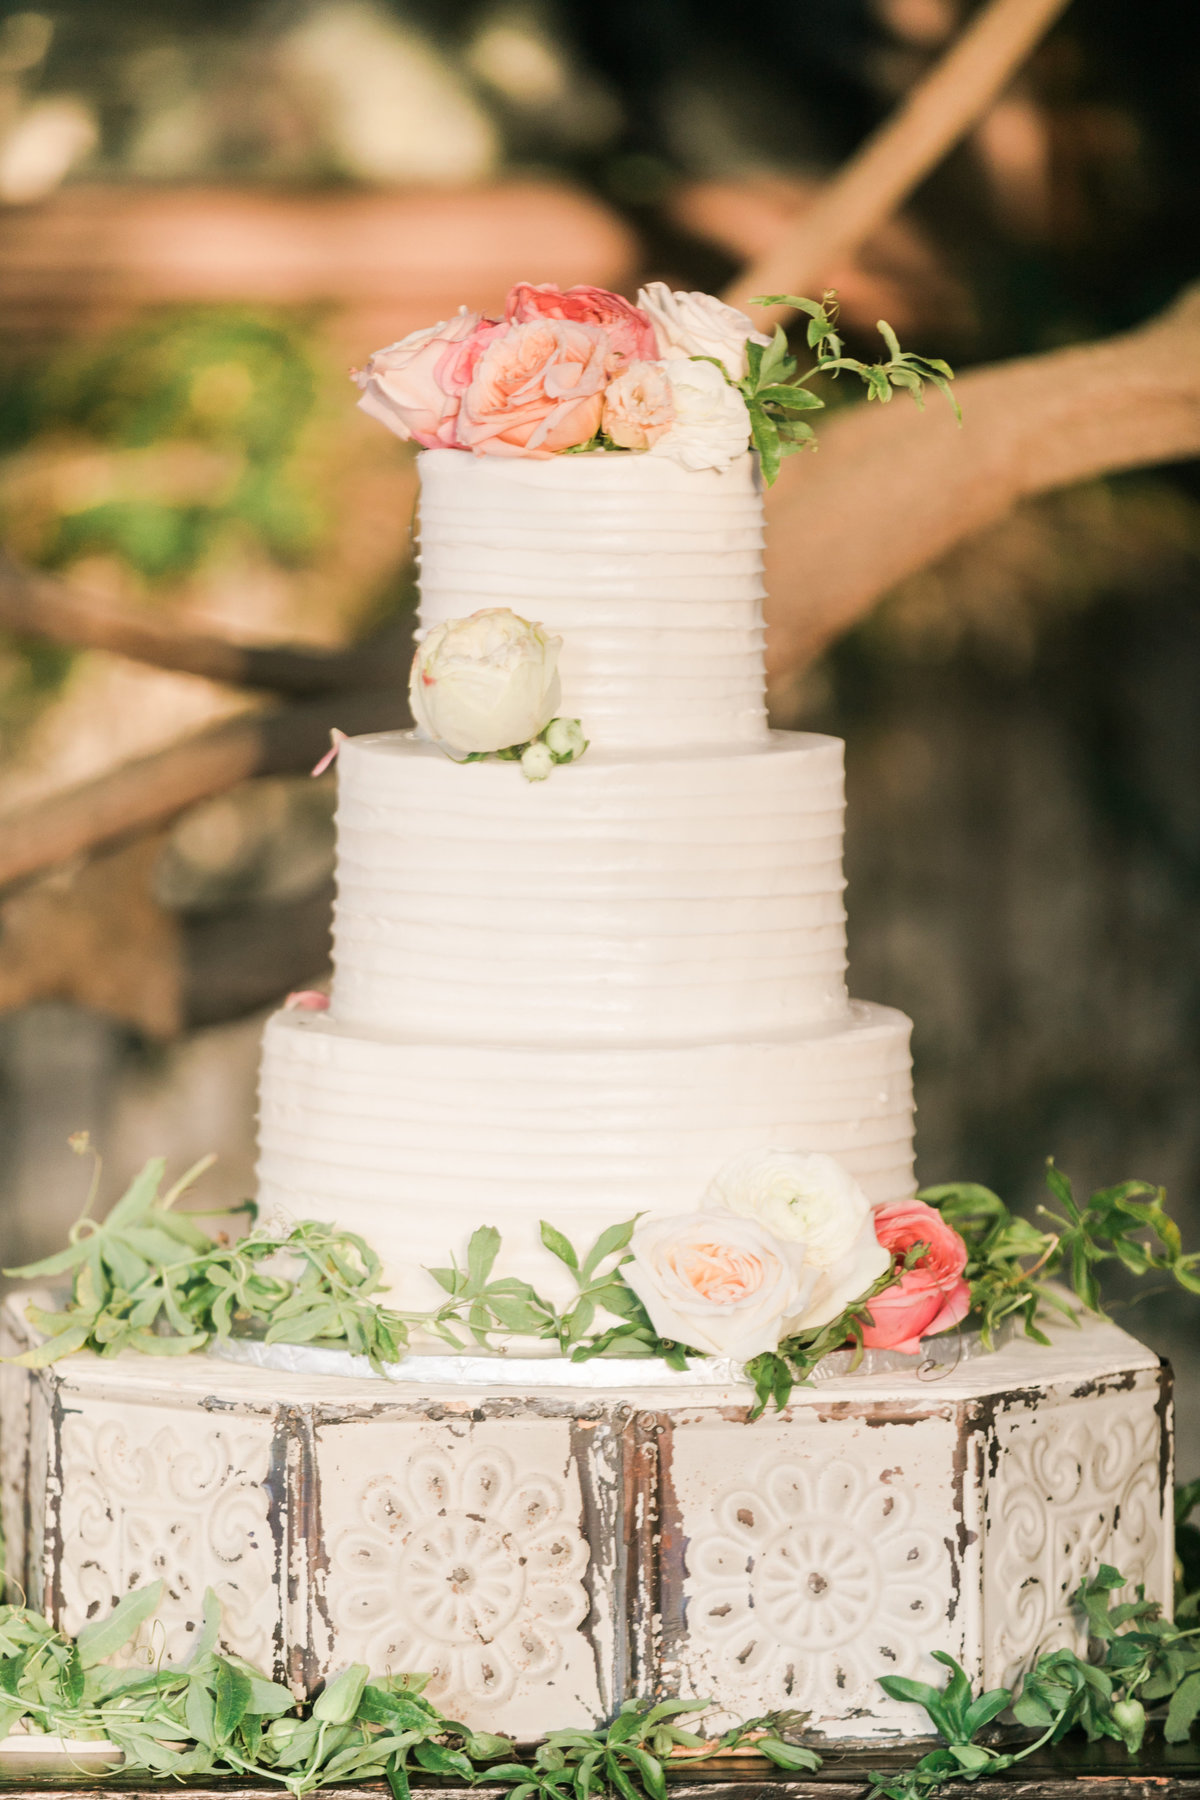 Quail_Ranch_Blush_California_Wedding_Valorie_Darling_Photography - 135 of 151